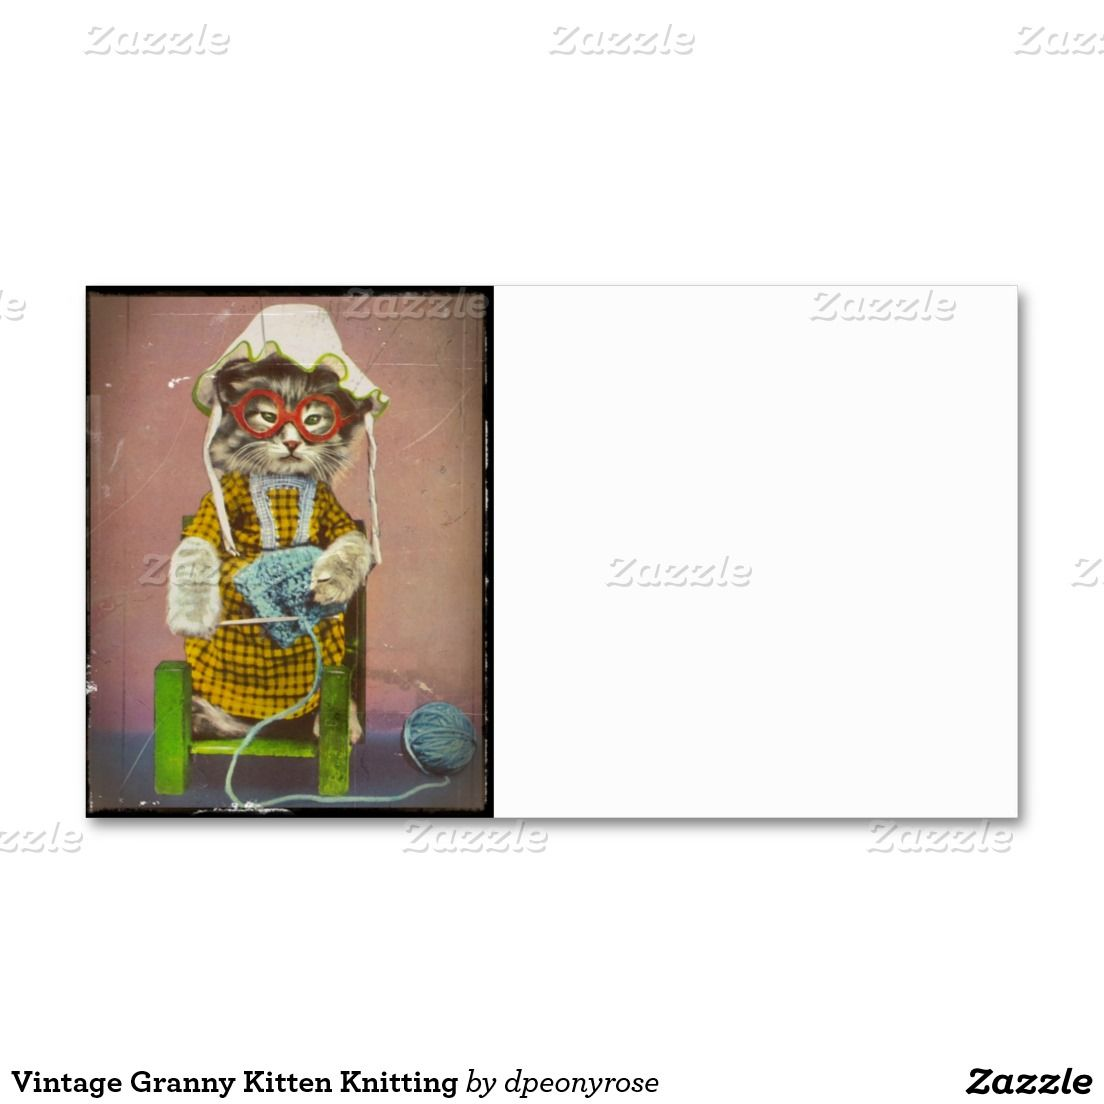 Vintage granny kitten knitting double sided standard business vintage granny kitten knitting double sided standard business cards pack of 100 magicingreecefo Image collections